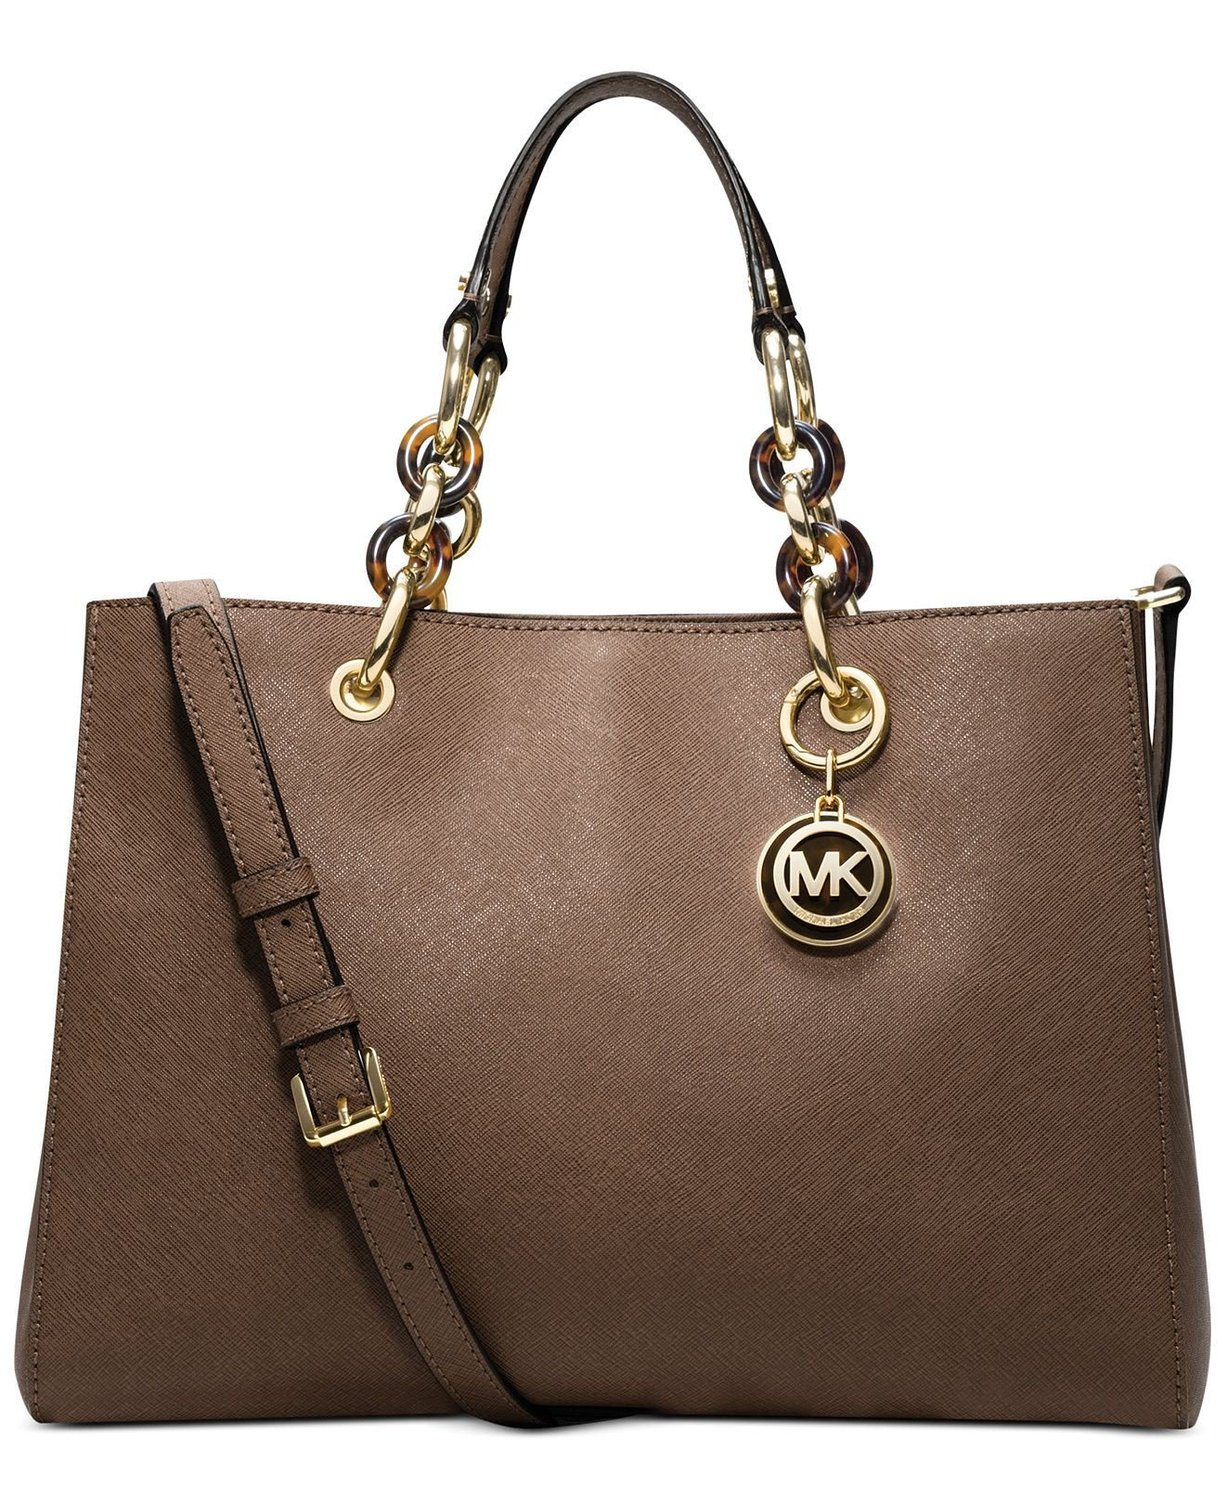 Michael Kors Cynthia Medium Satchel in Dark Dune Brown ... 948508545e7